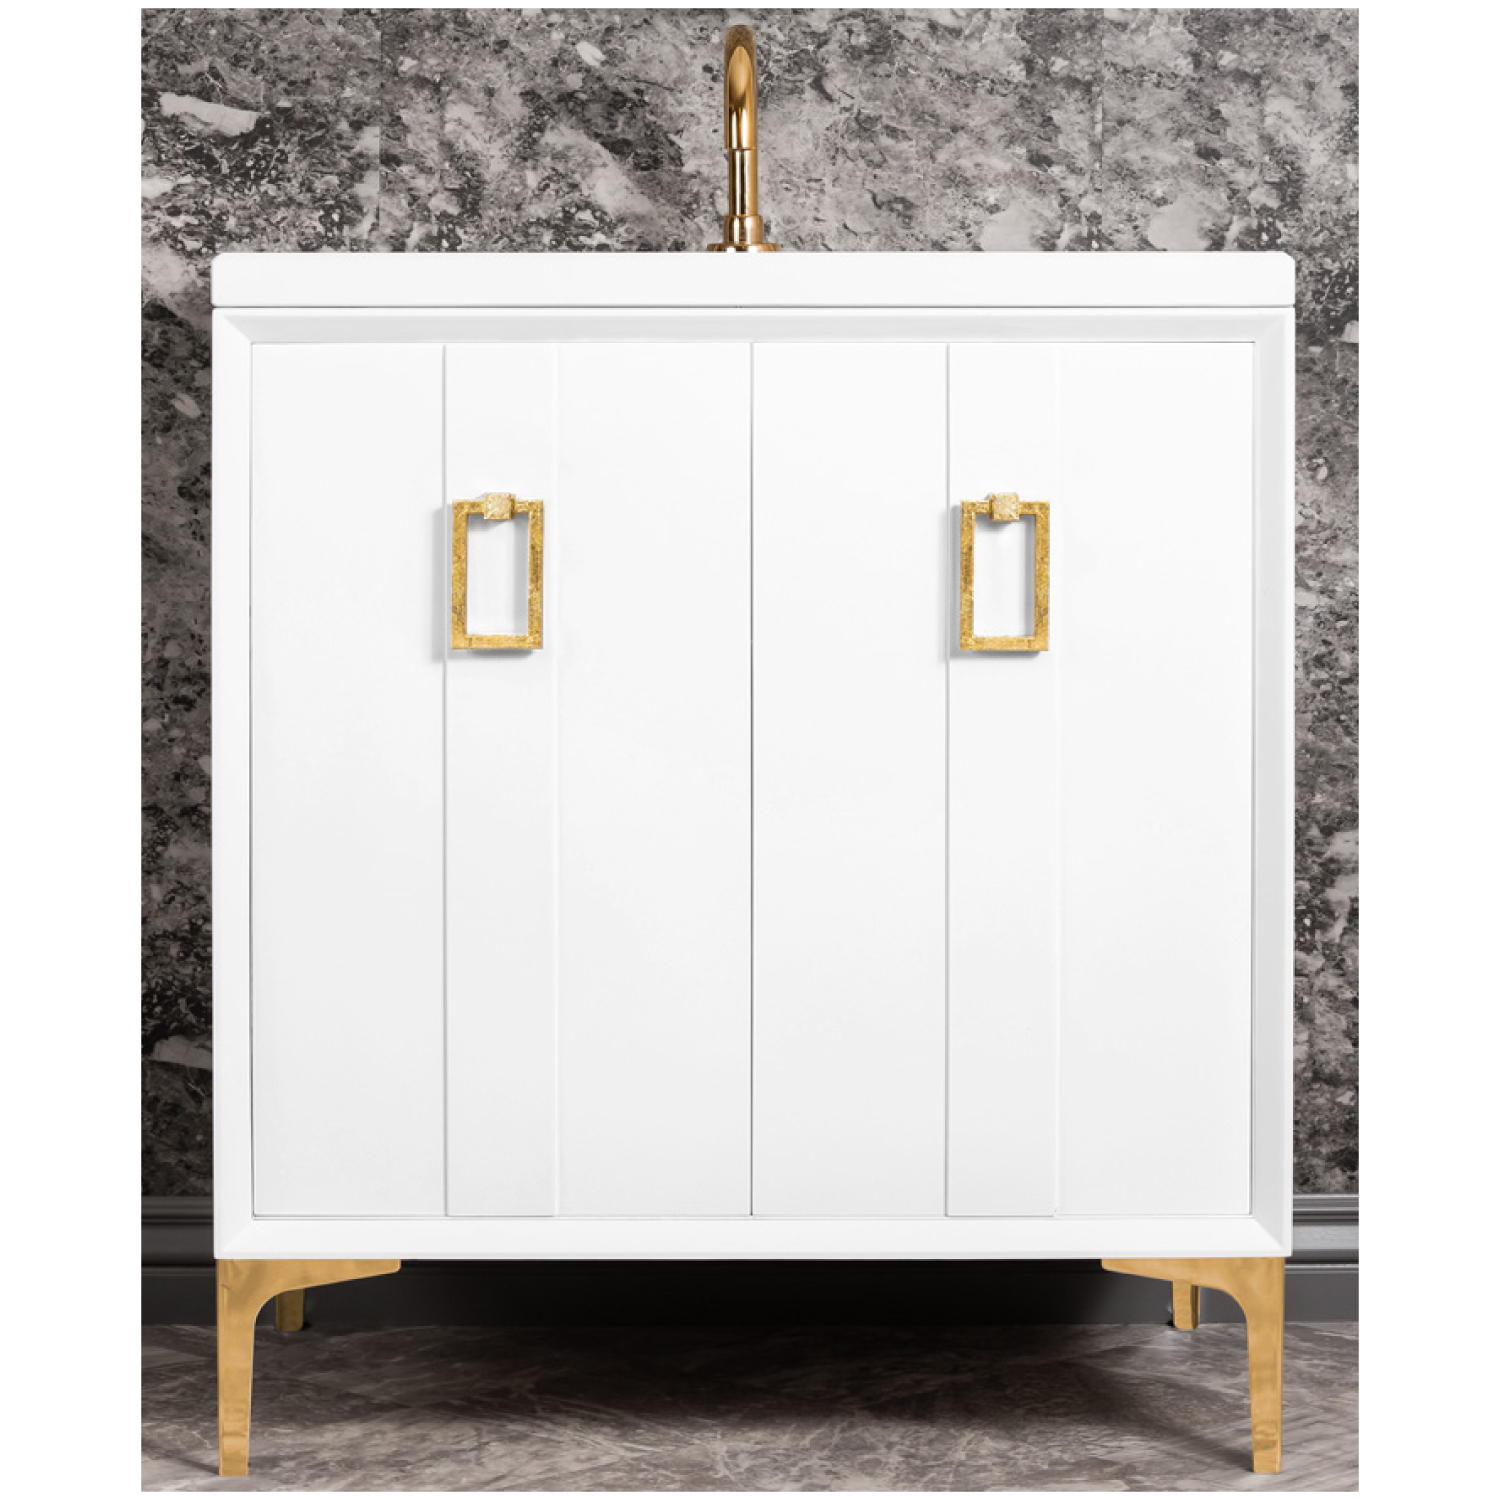 "VAN30W-008   30"" White Tuxedo with Coach - Shown with PB (Polished Brass Finish)"